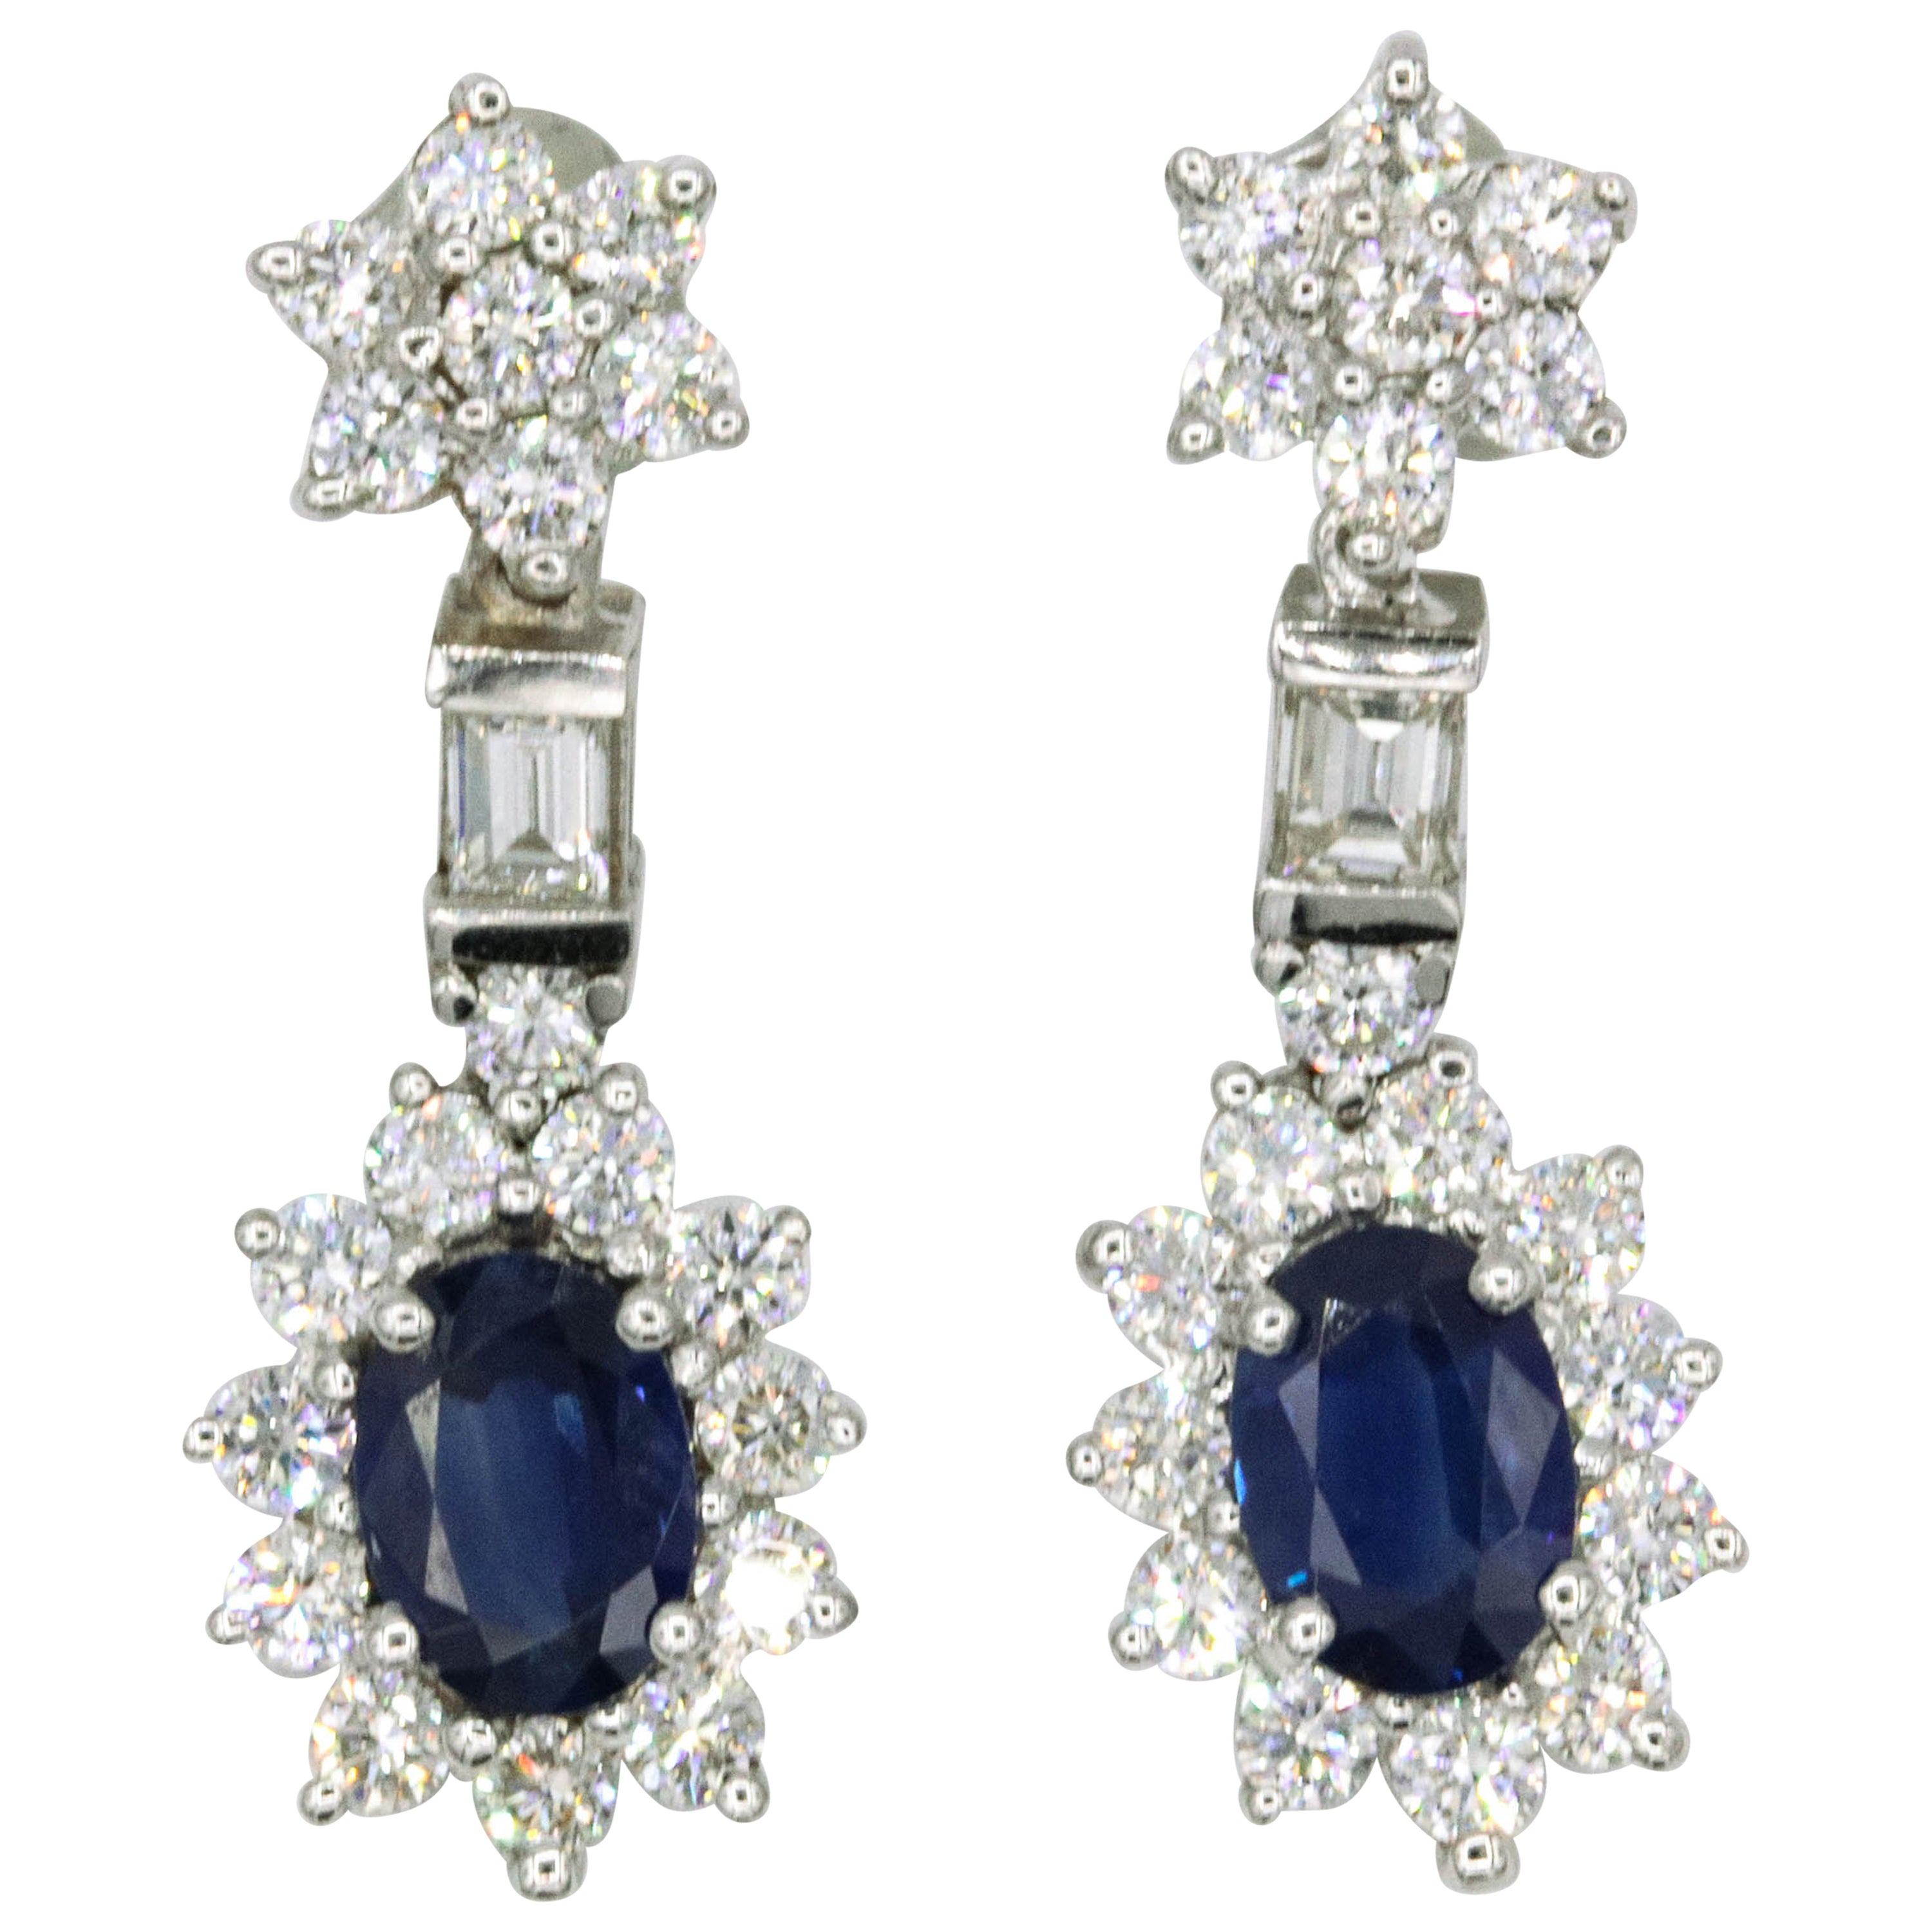 Sapphire Diamond Cluster Drop Earrings 3.63 Carat 18 Karat White Gold